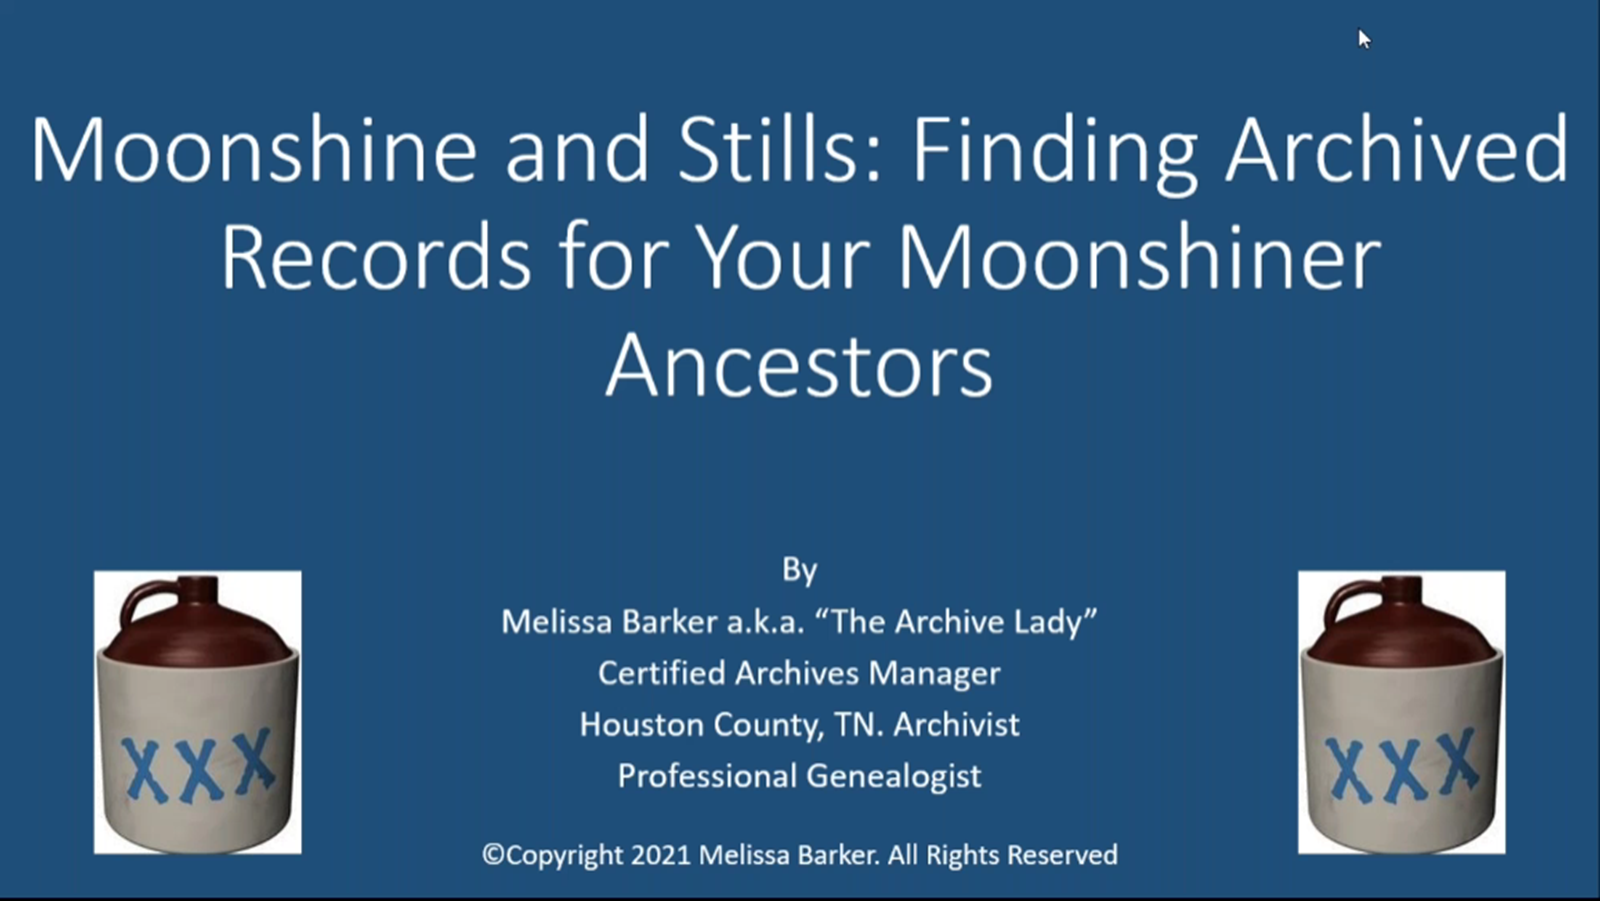 Moonshine and Stills: Finding Archived Records for Your Moonshiner Ancestor